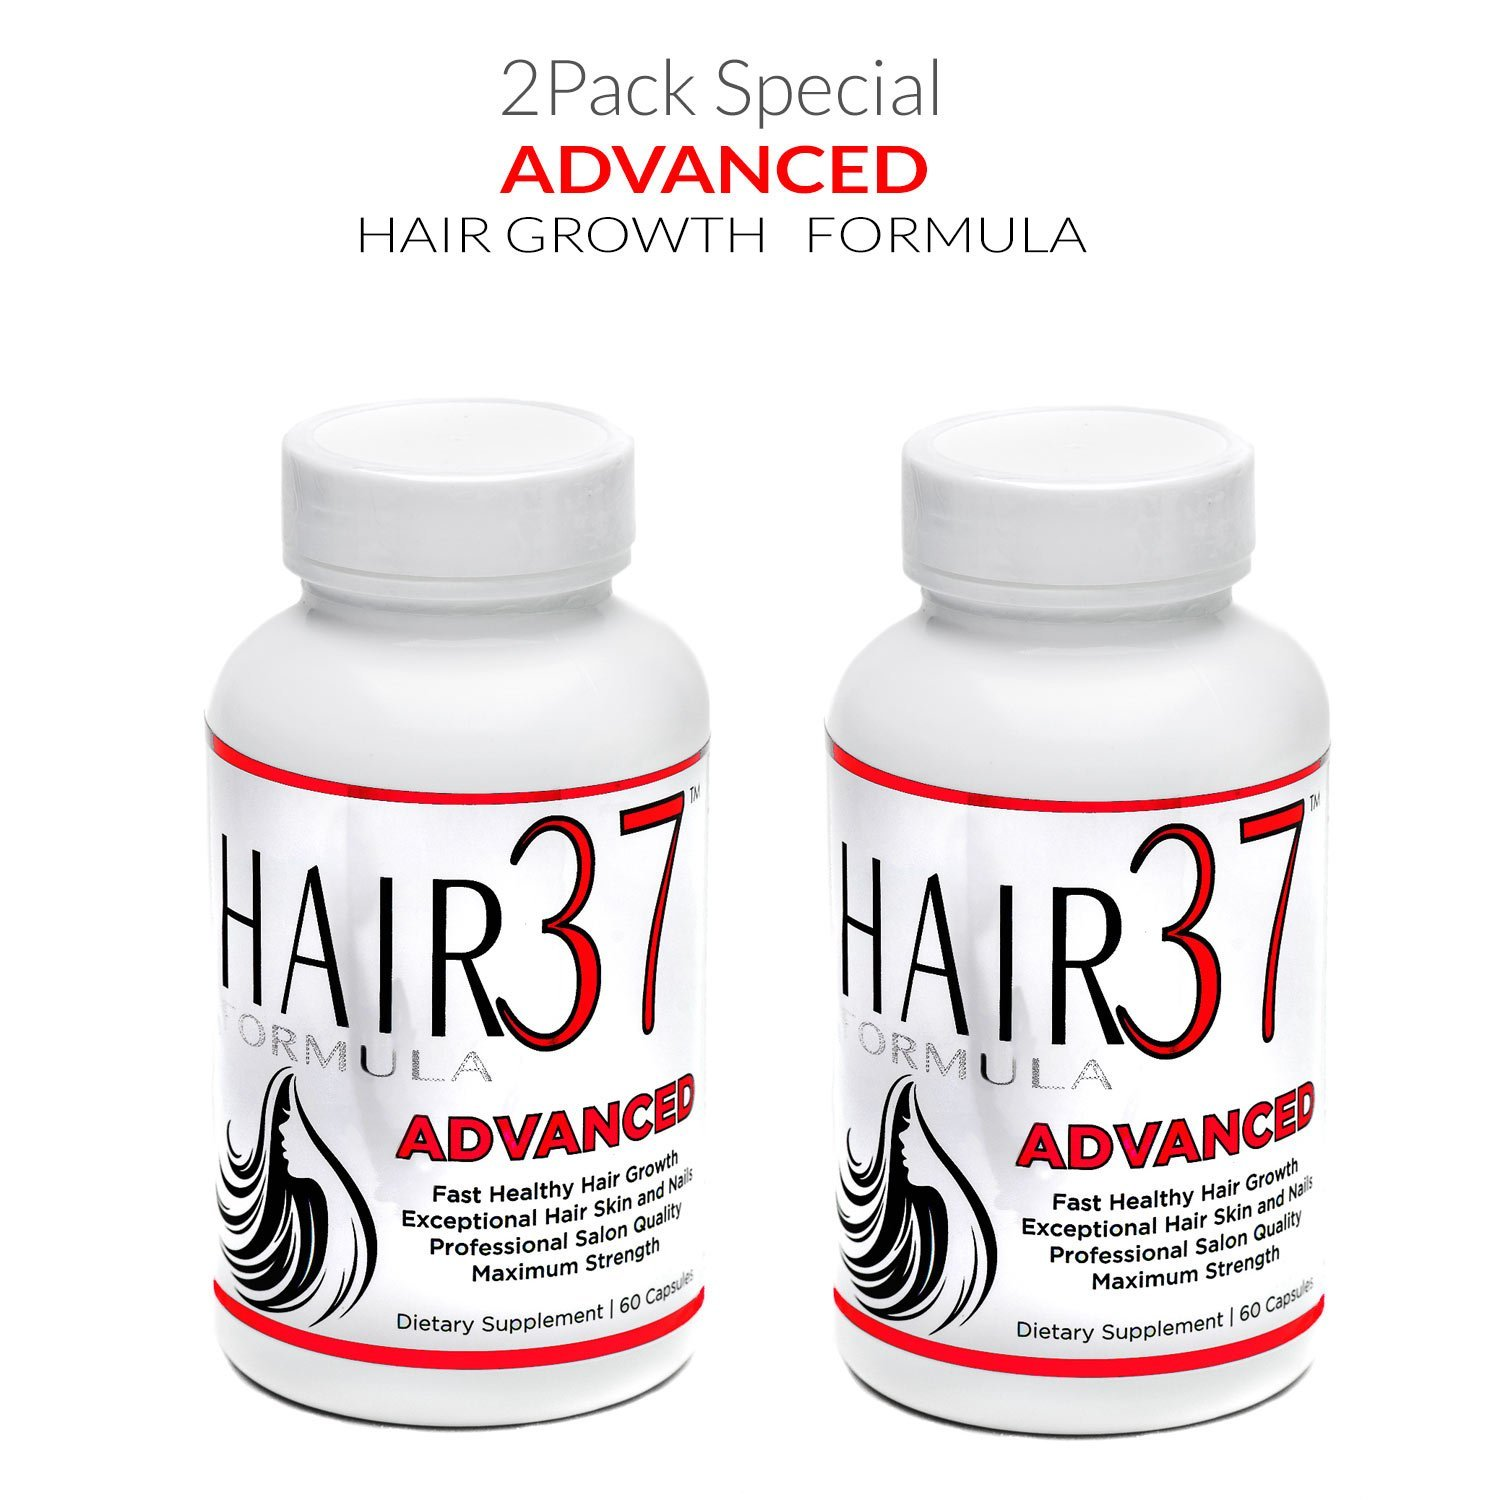 Hair Formula 37 Advanced with Biotin 2 Pack - Vitamins for Hair Growth Supplements for Faster Growing Hair Skin and Nails